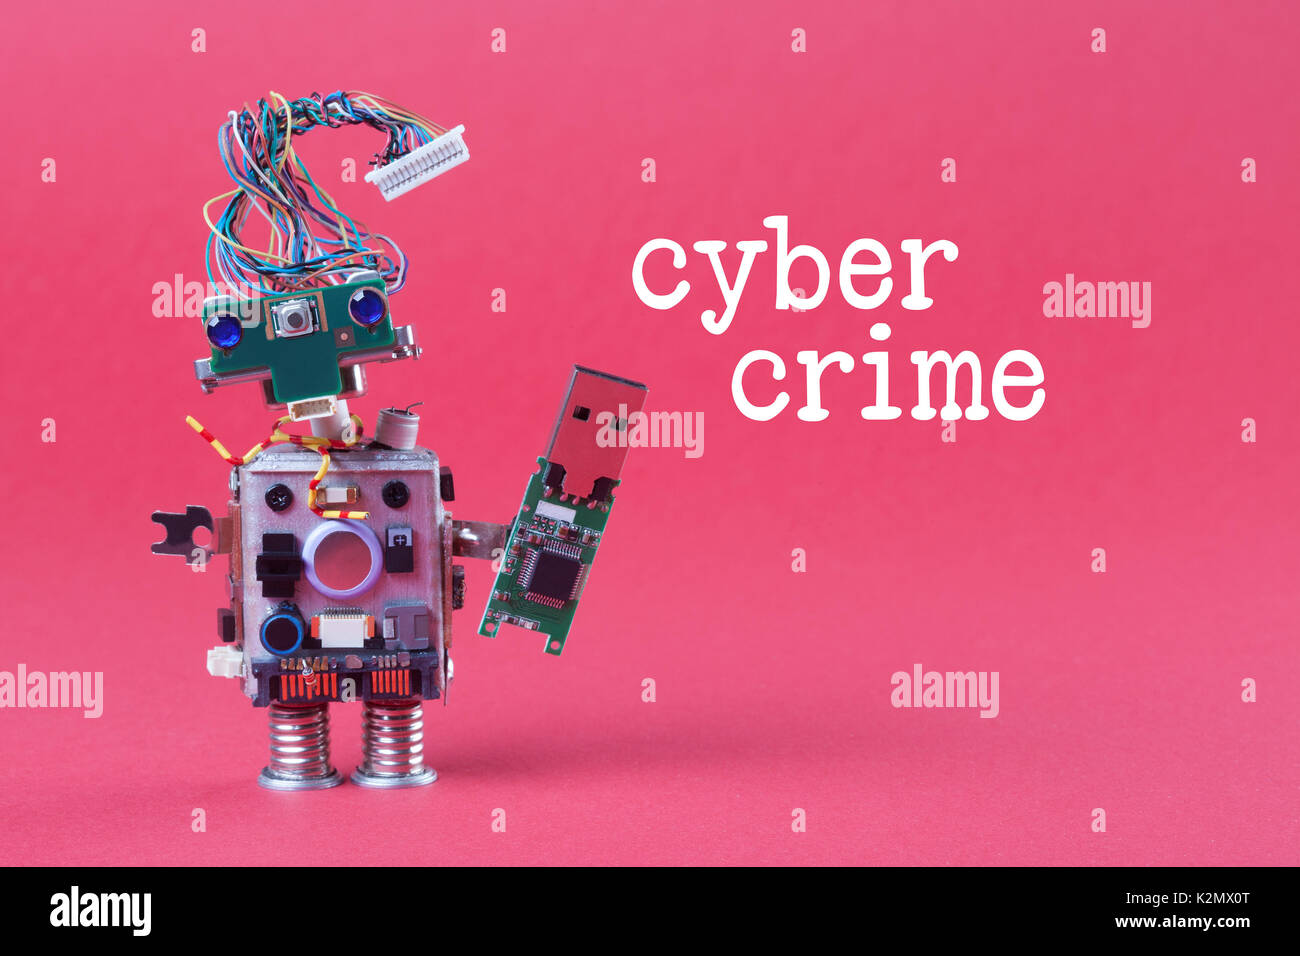 Cybercrime and data hacking concept. Retro robot with usb flash storage stick, stylish computer character blue eyed head, electrical wire hairstyle. Pink background - Stock Image